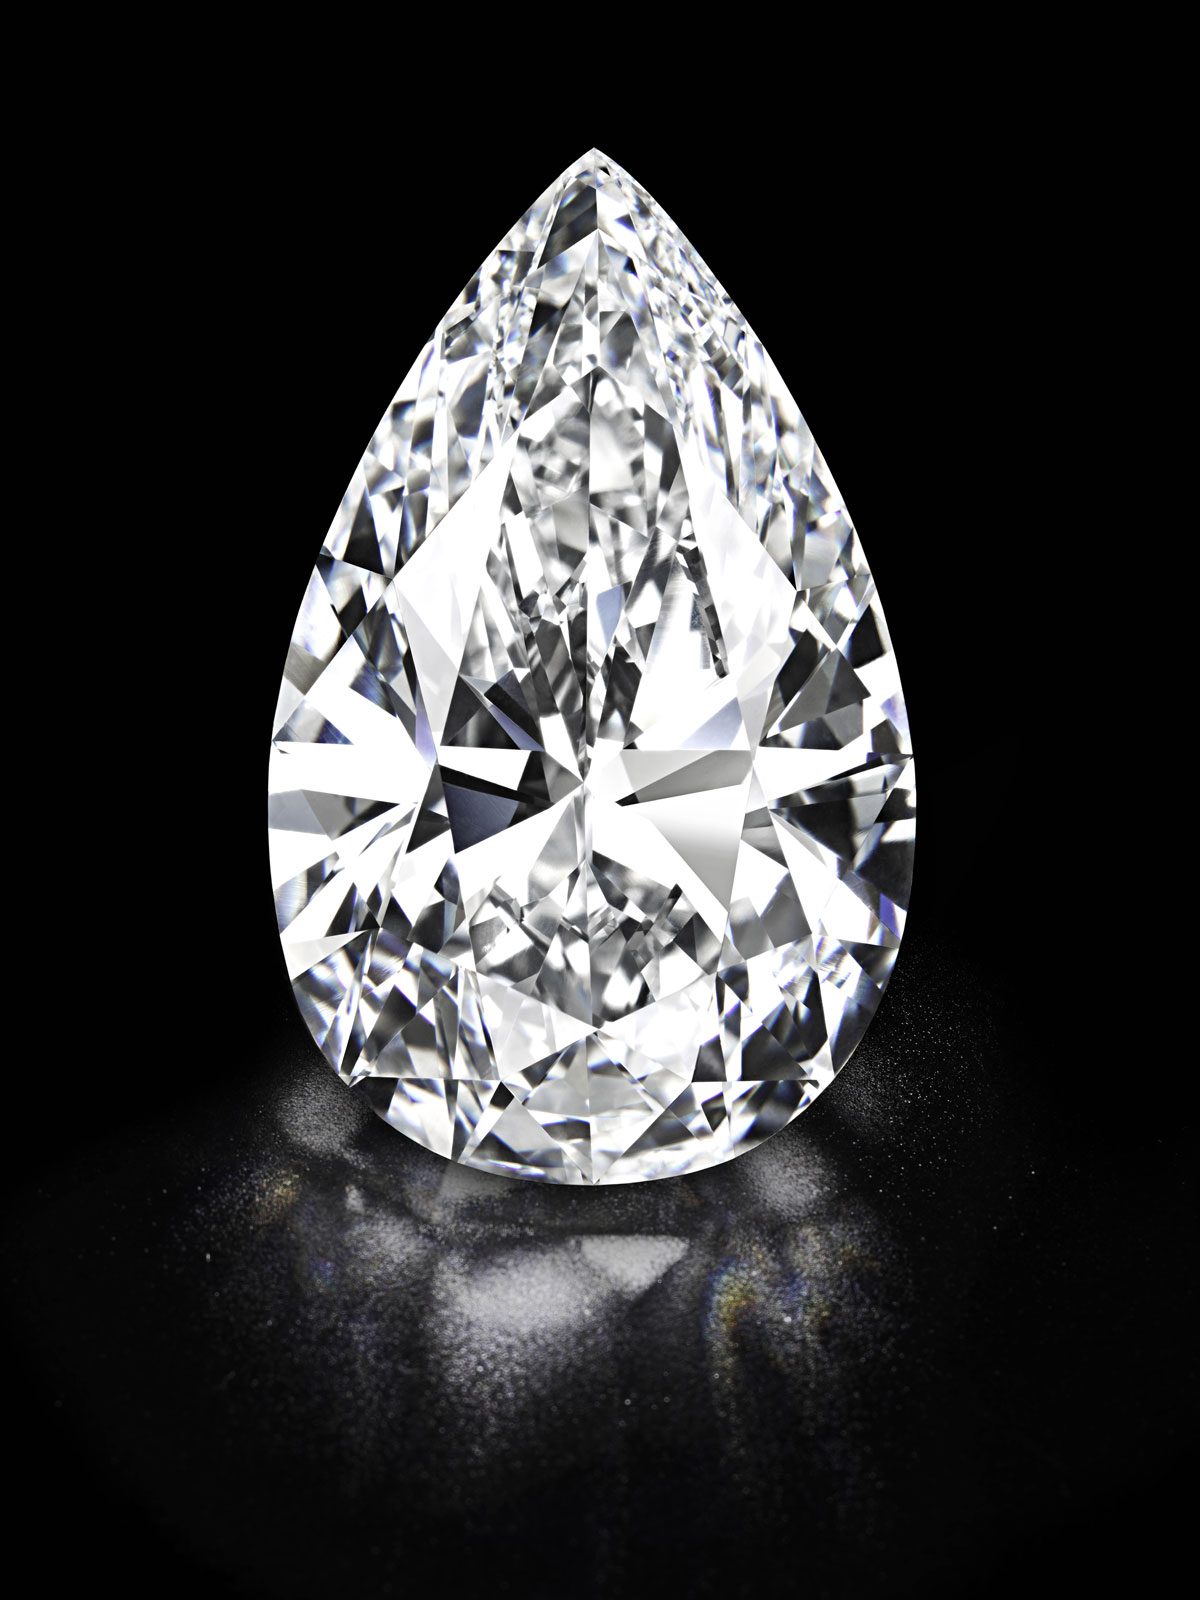 101.7-carat-Worlds-largest-flawless-diamond-1.jpg